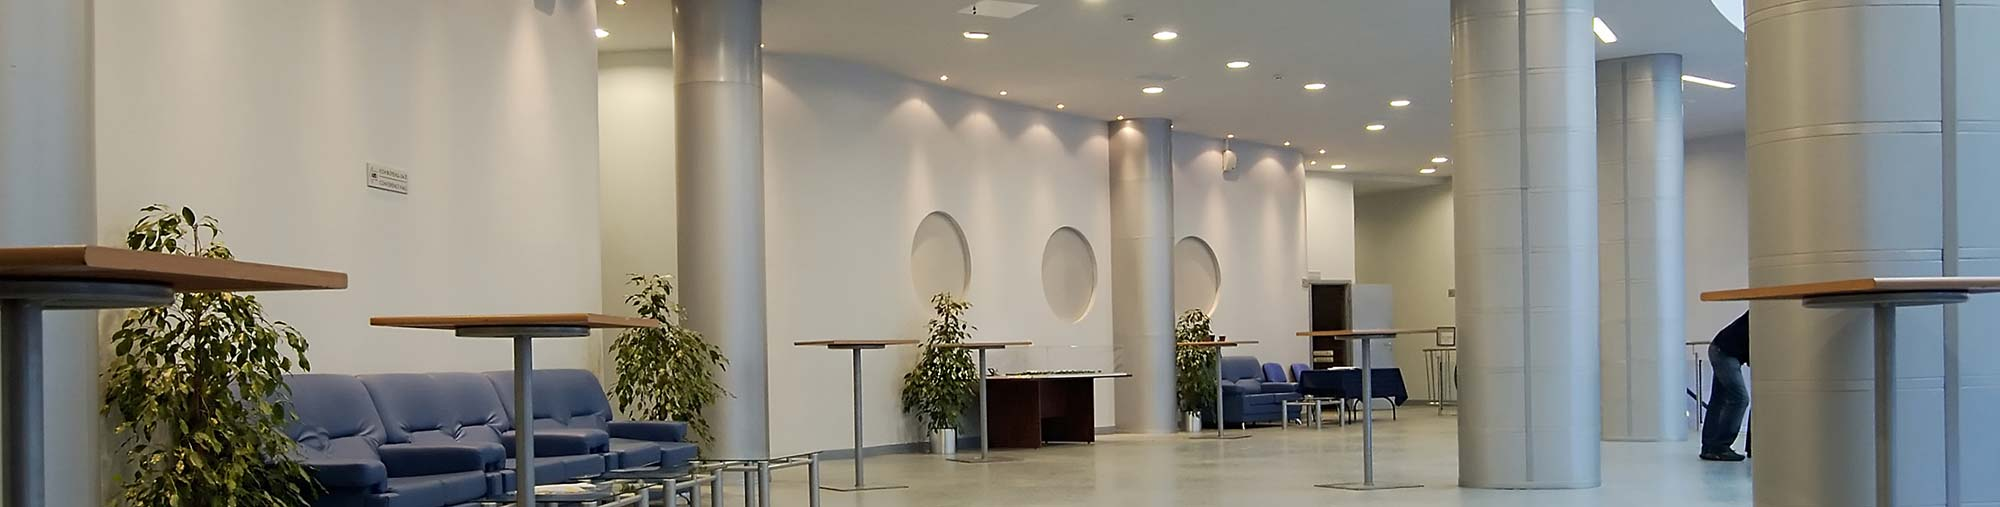 Foyer with pillars in office building